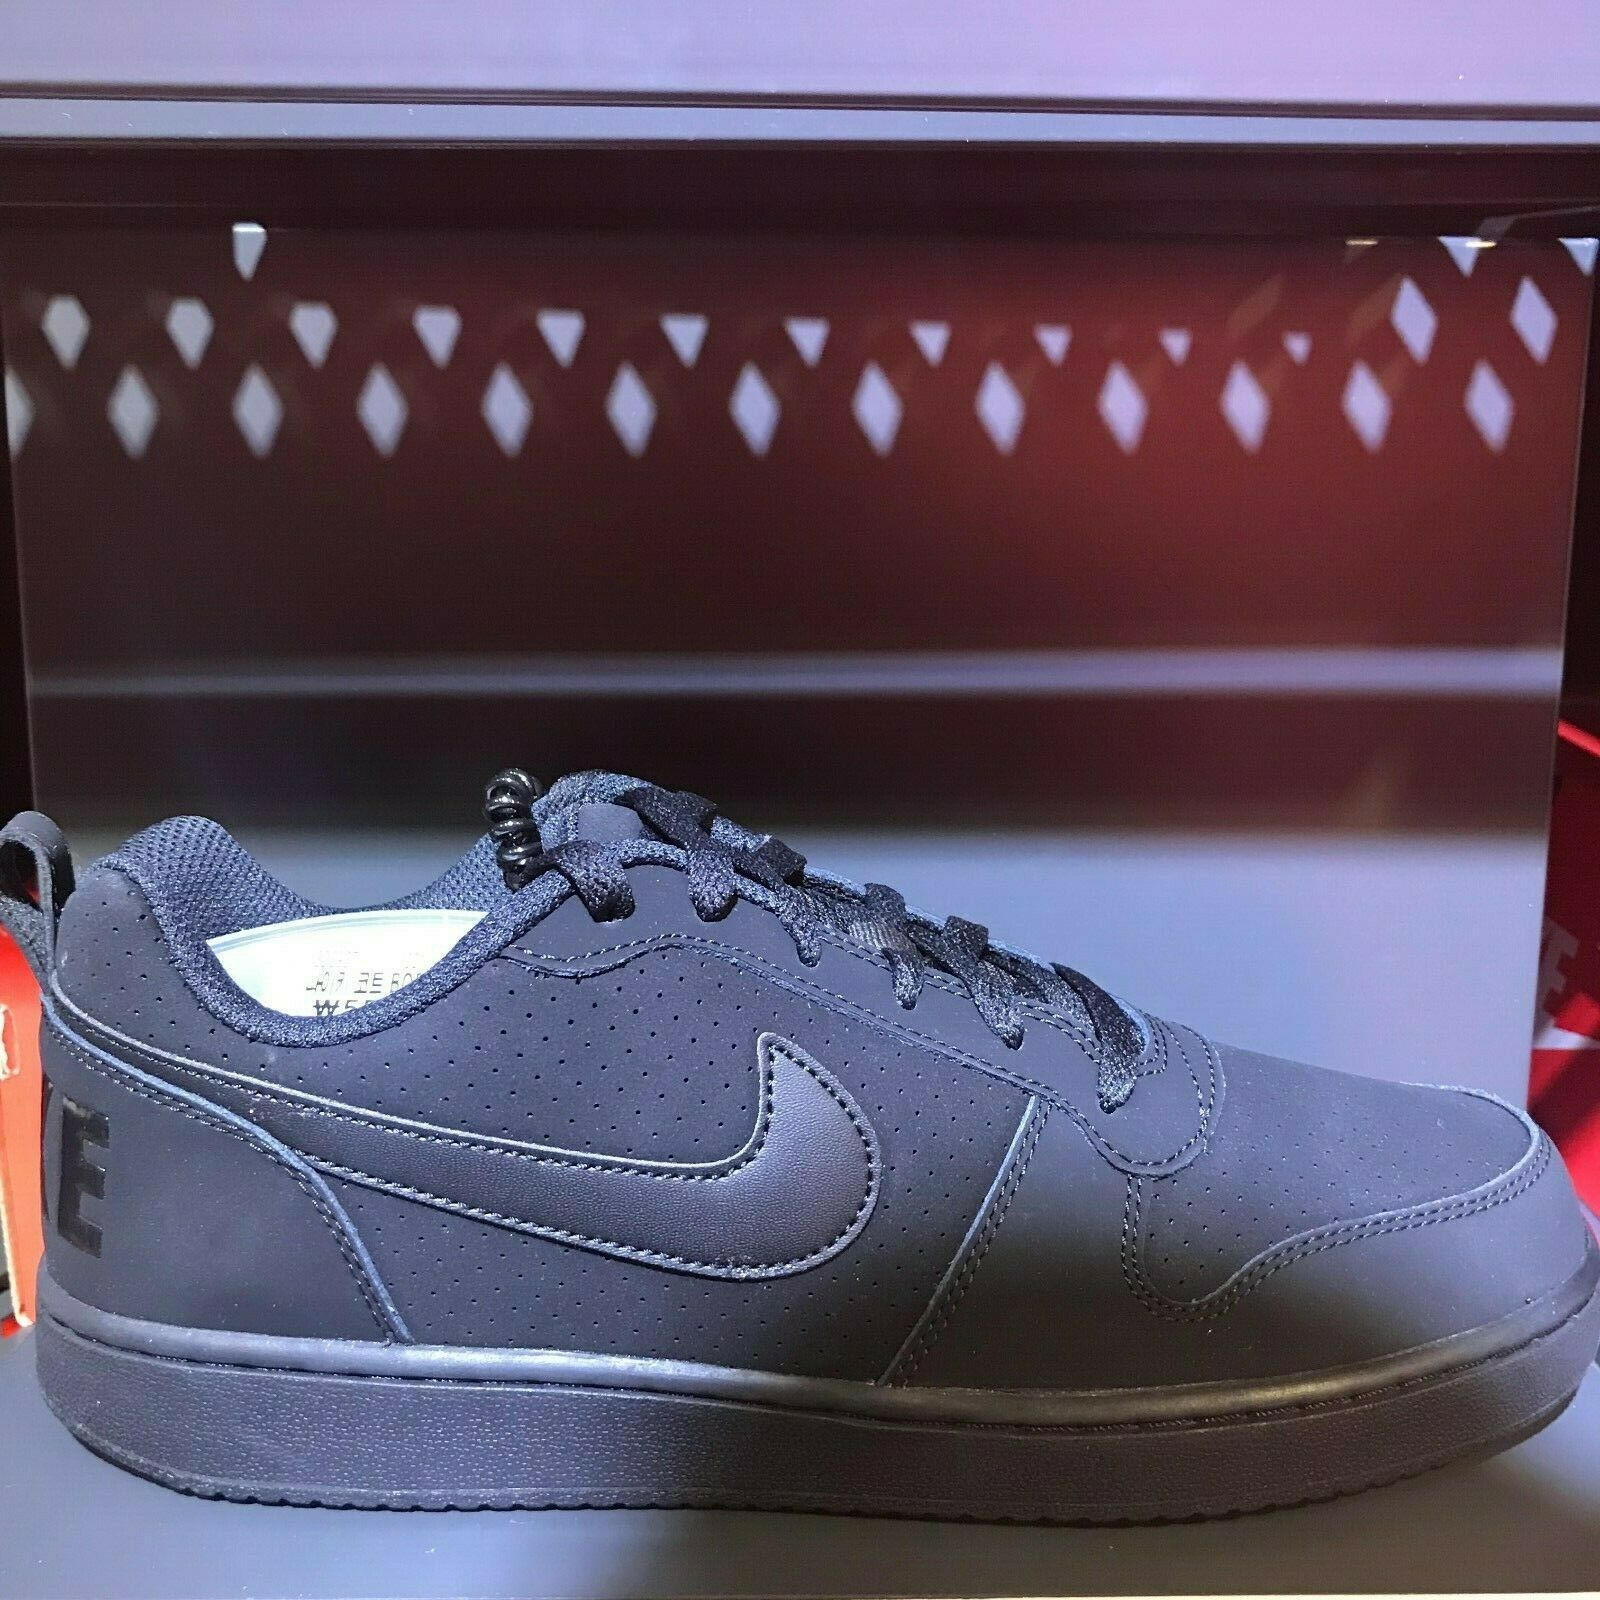 online store 9dcd5 d146a Nike Men s Court Borough Low Sneakers Shoes Black 838937-000 SZ 5-12. Brand  New with tag and Original Box.   Limited quantity  . black